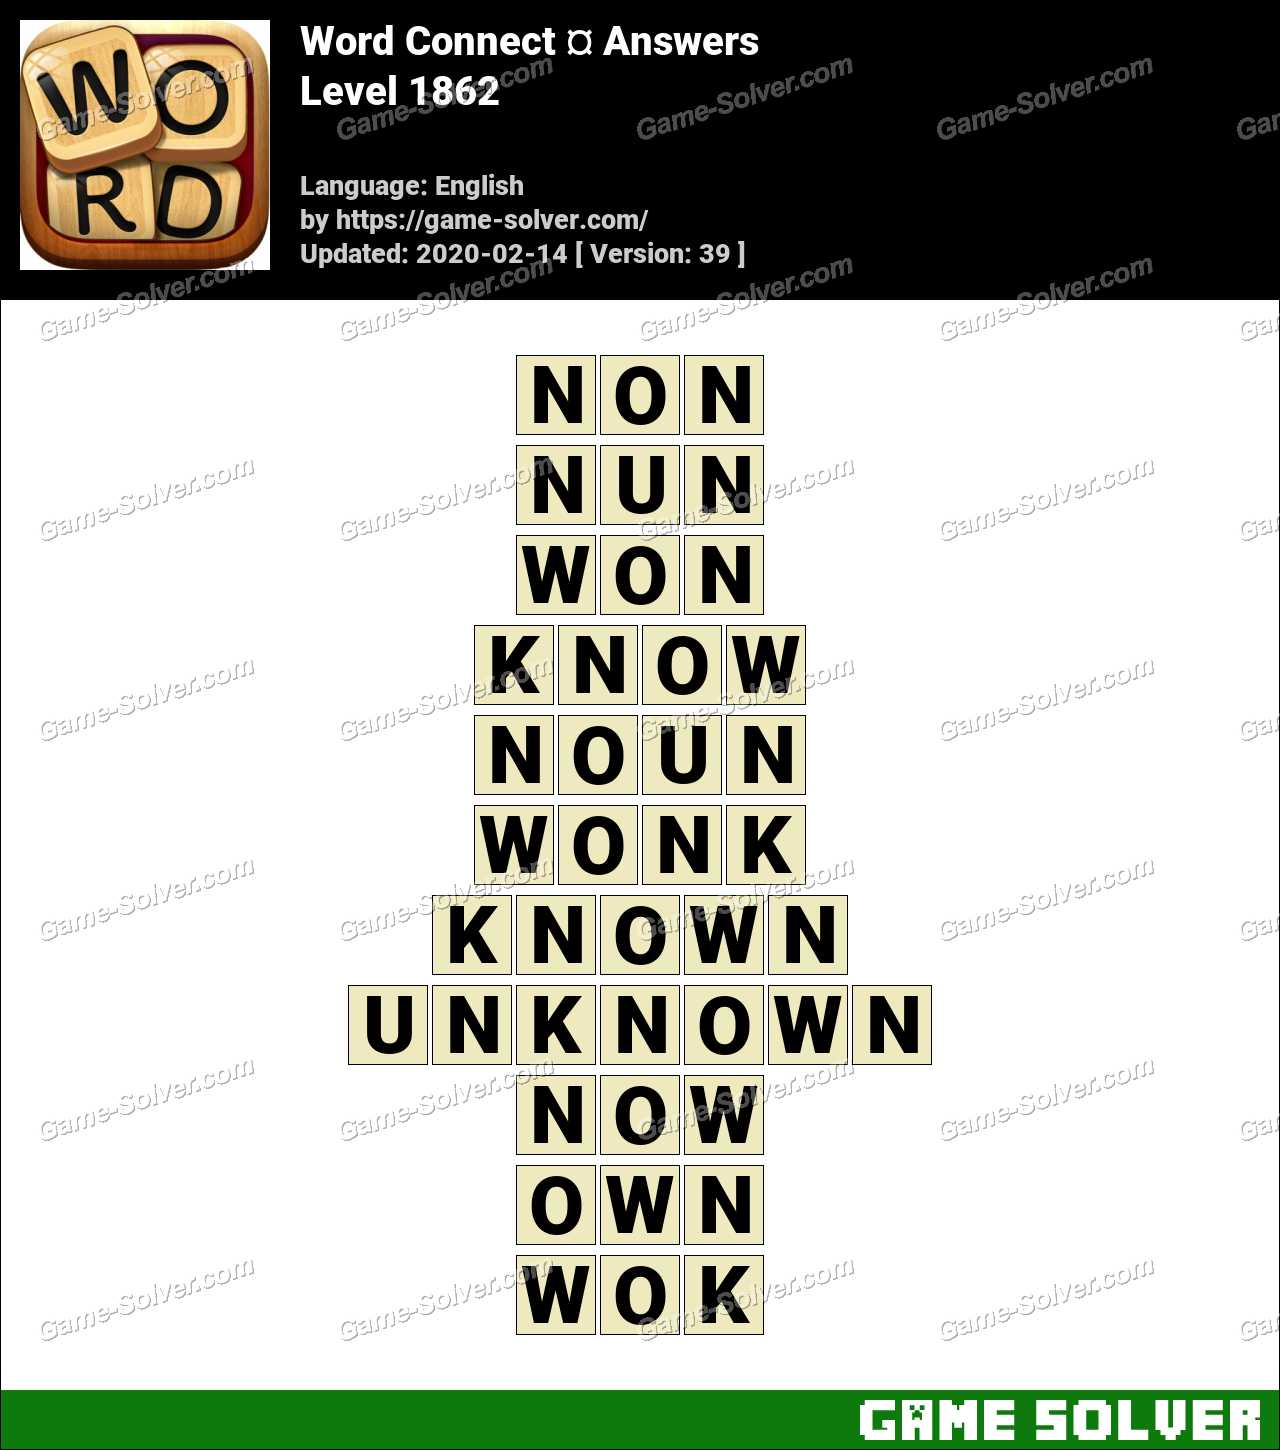 Word Connect Level 1862 Answers